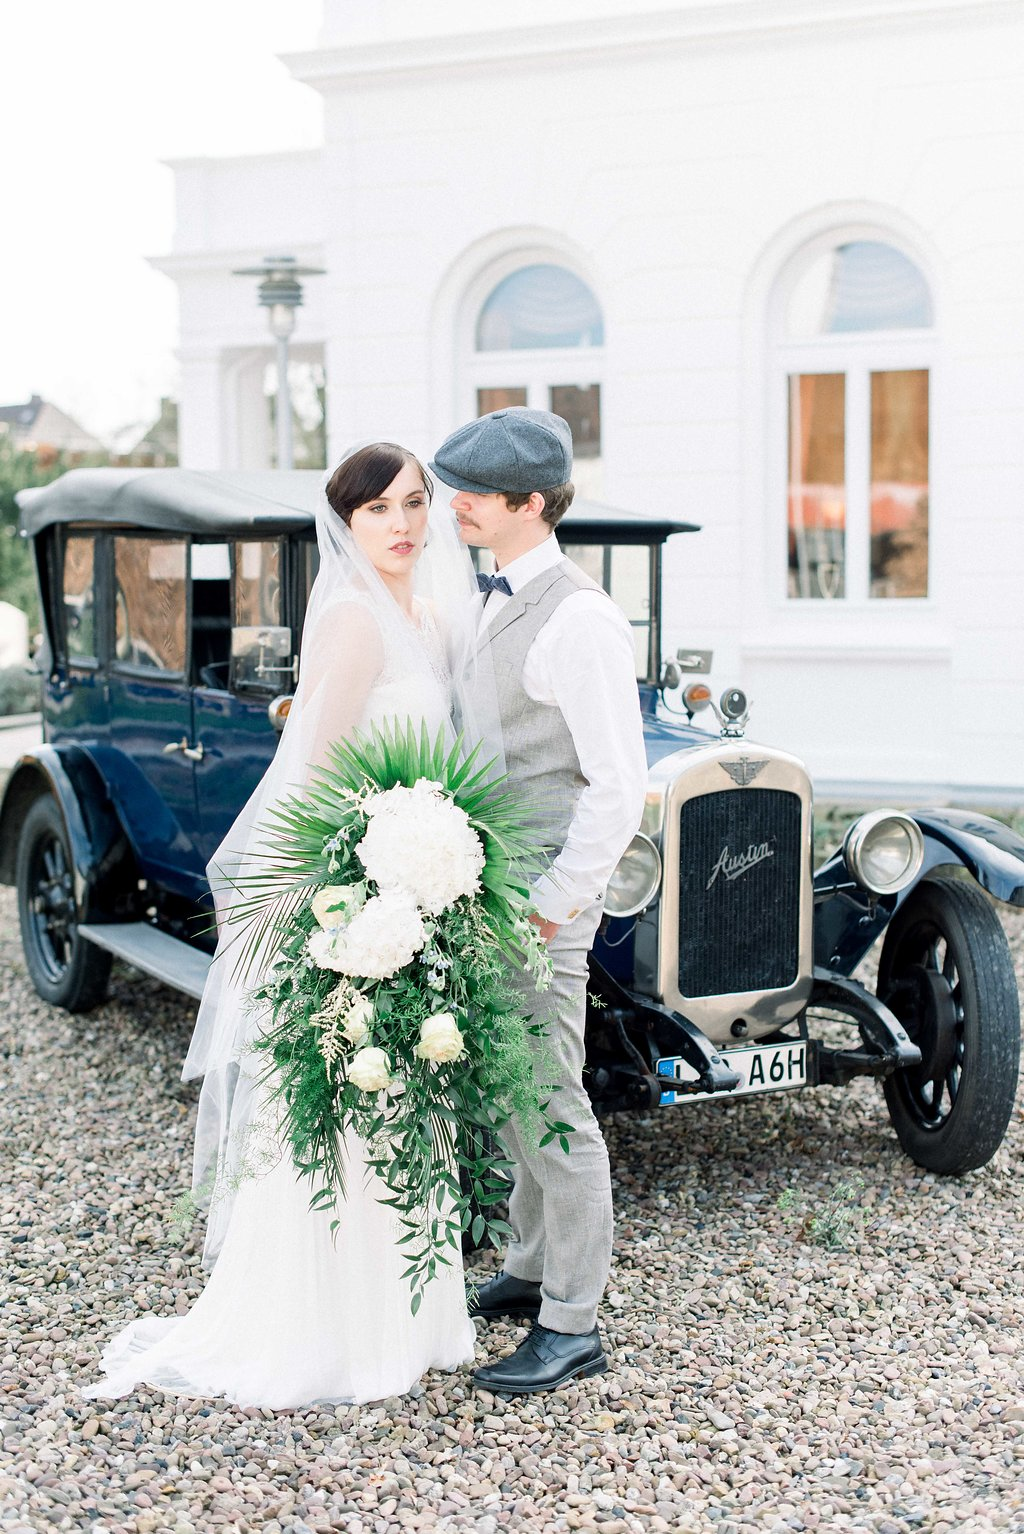 Styled Shooting Hochzeit 20er Jahre Peaky Blinders Great Gatsby Art